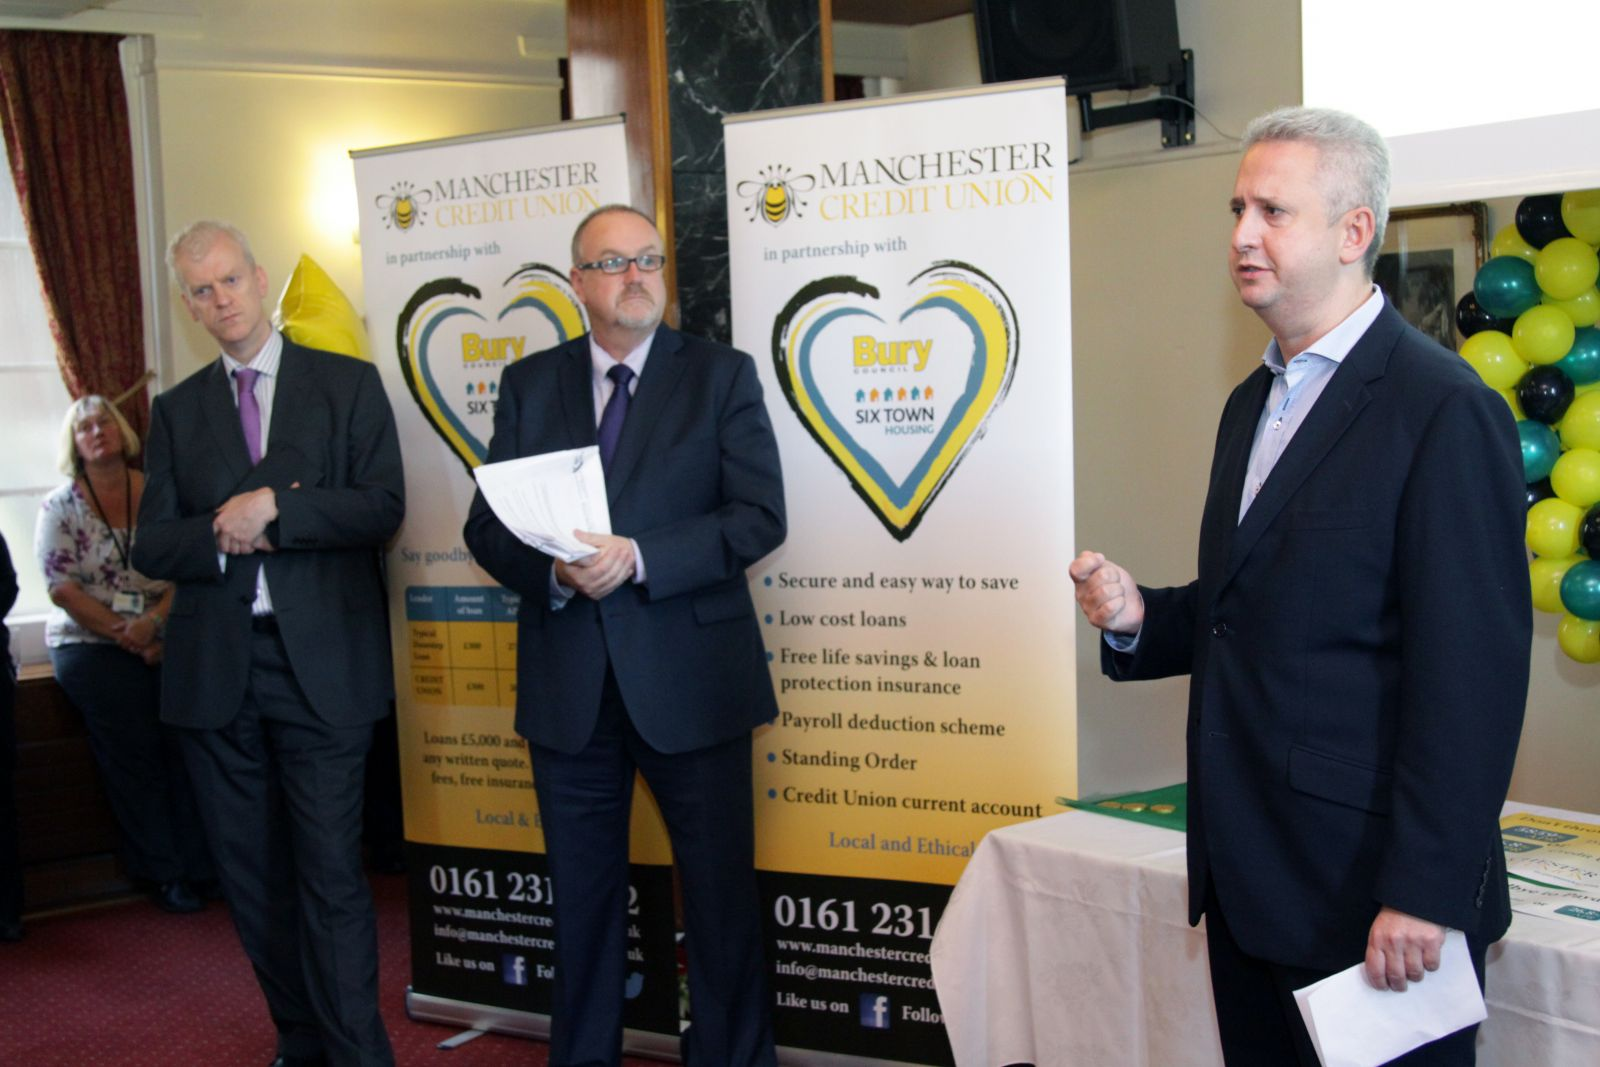 Manchester Credit Union launch